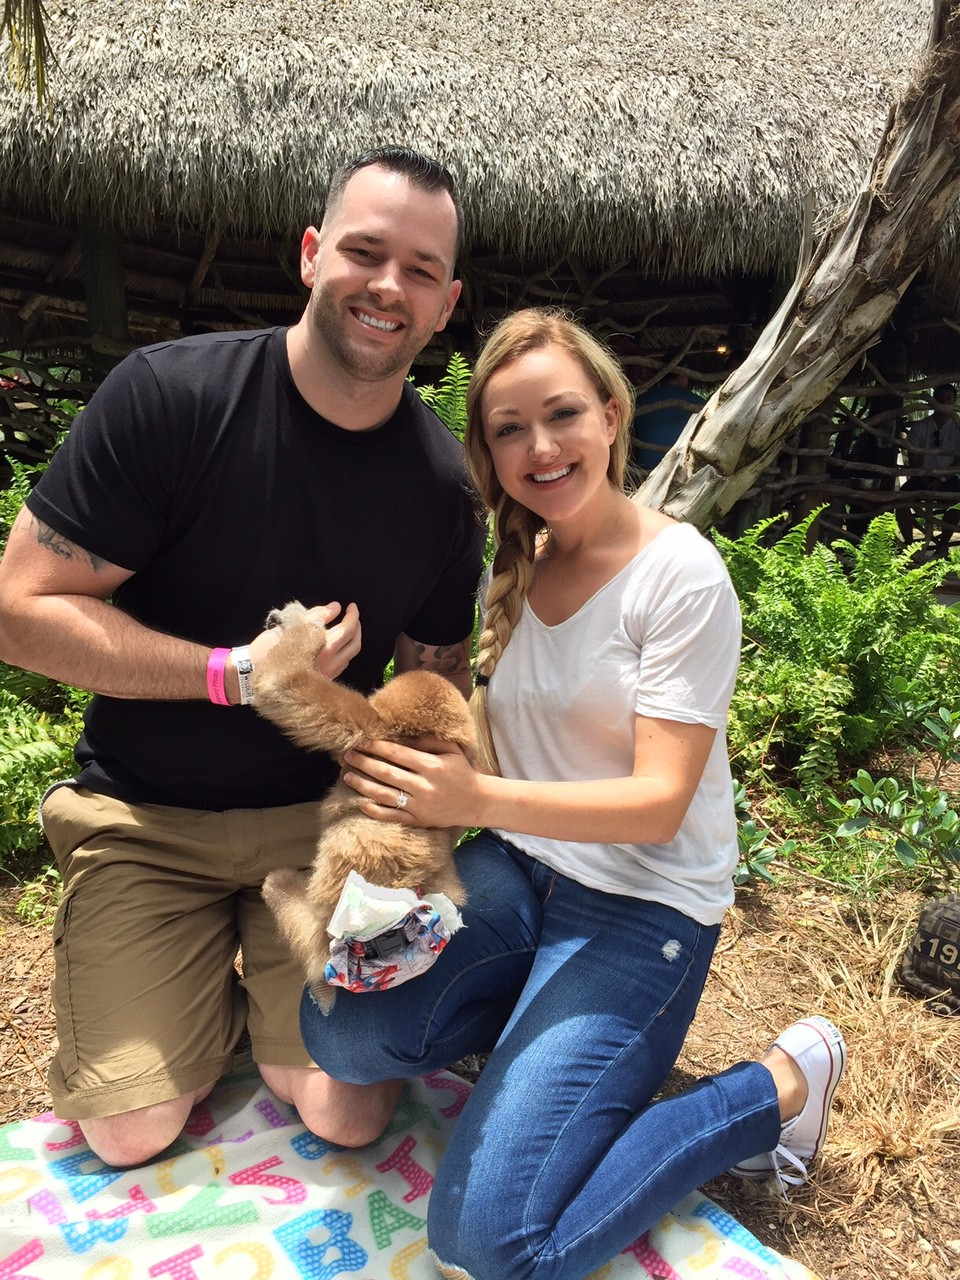 Image 3 of Jessica and Garrett's Marriage Proposal with a Baby Monkey